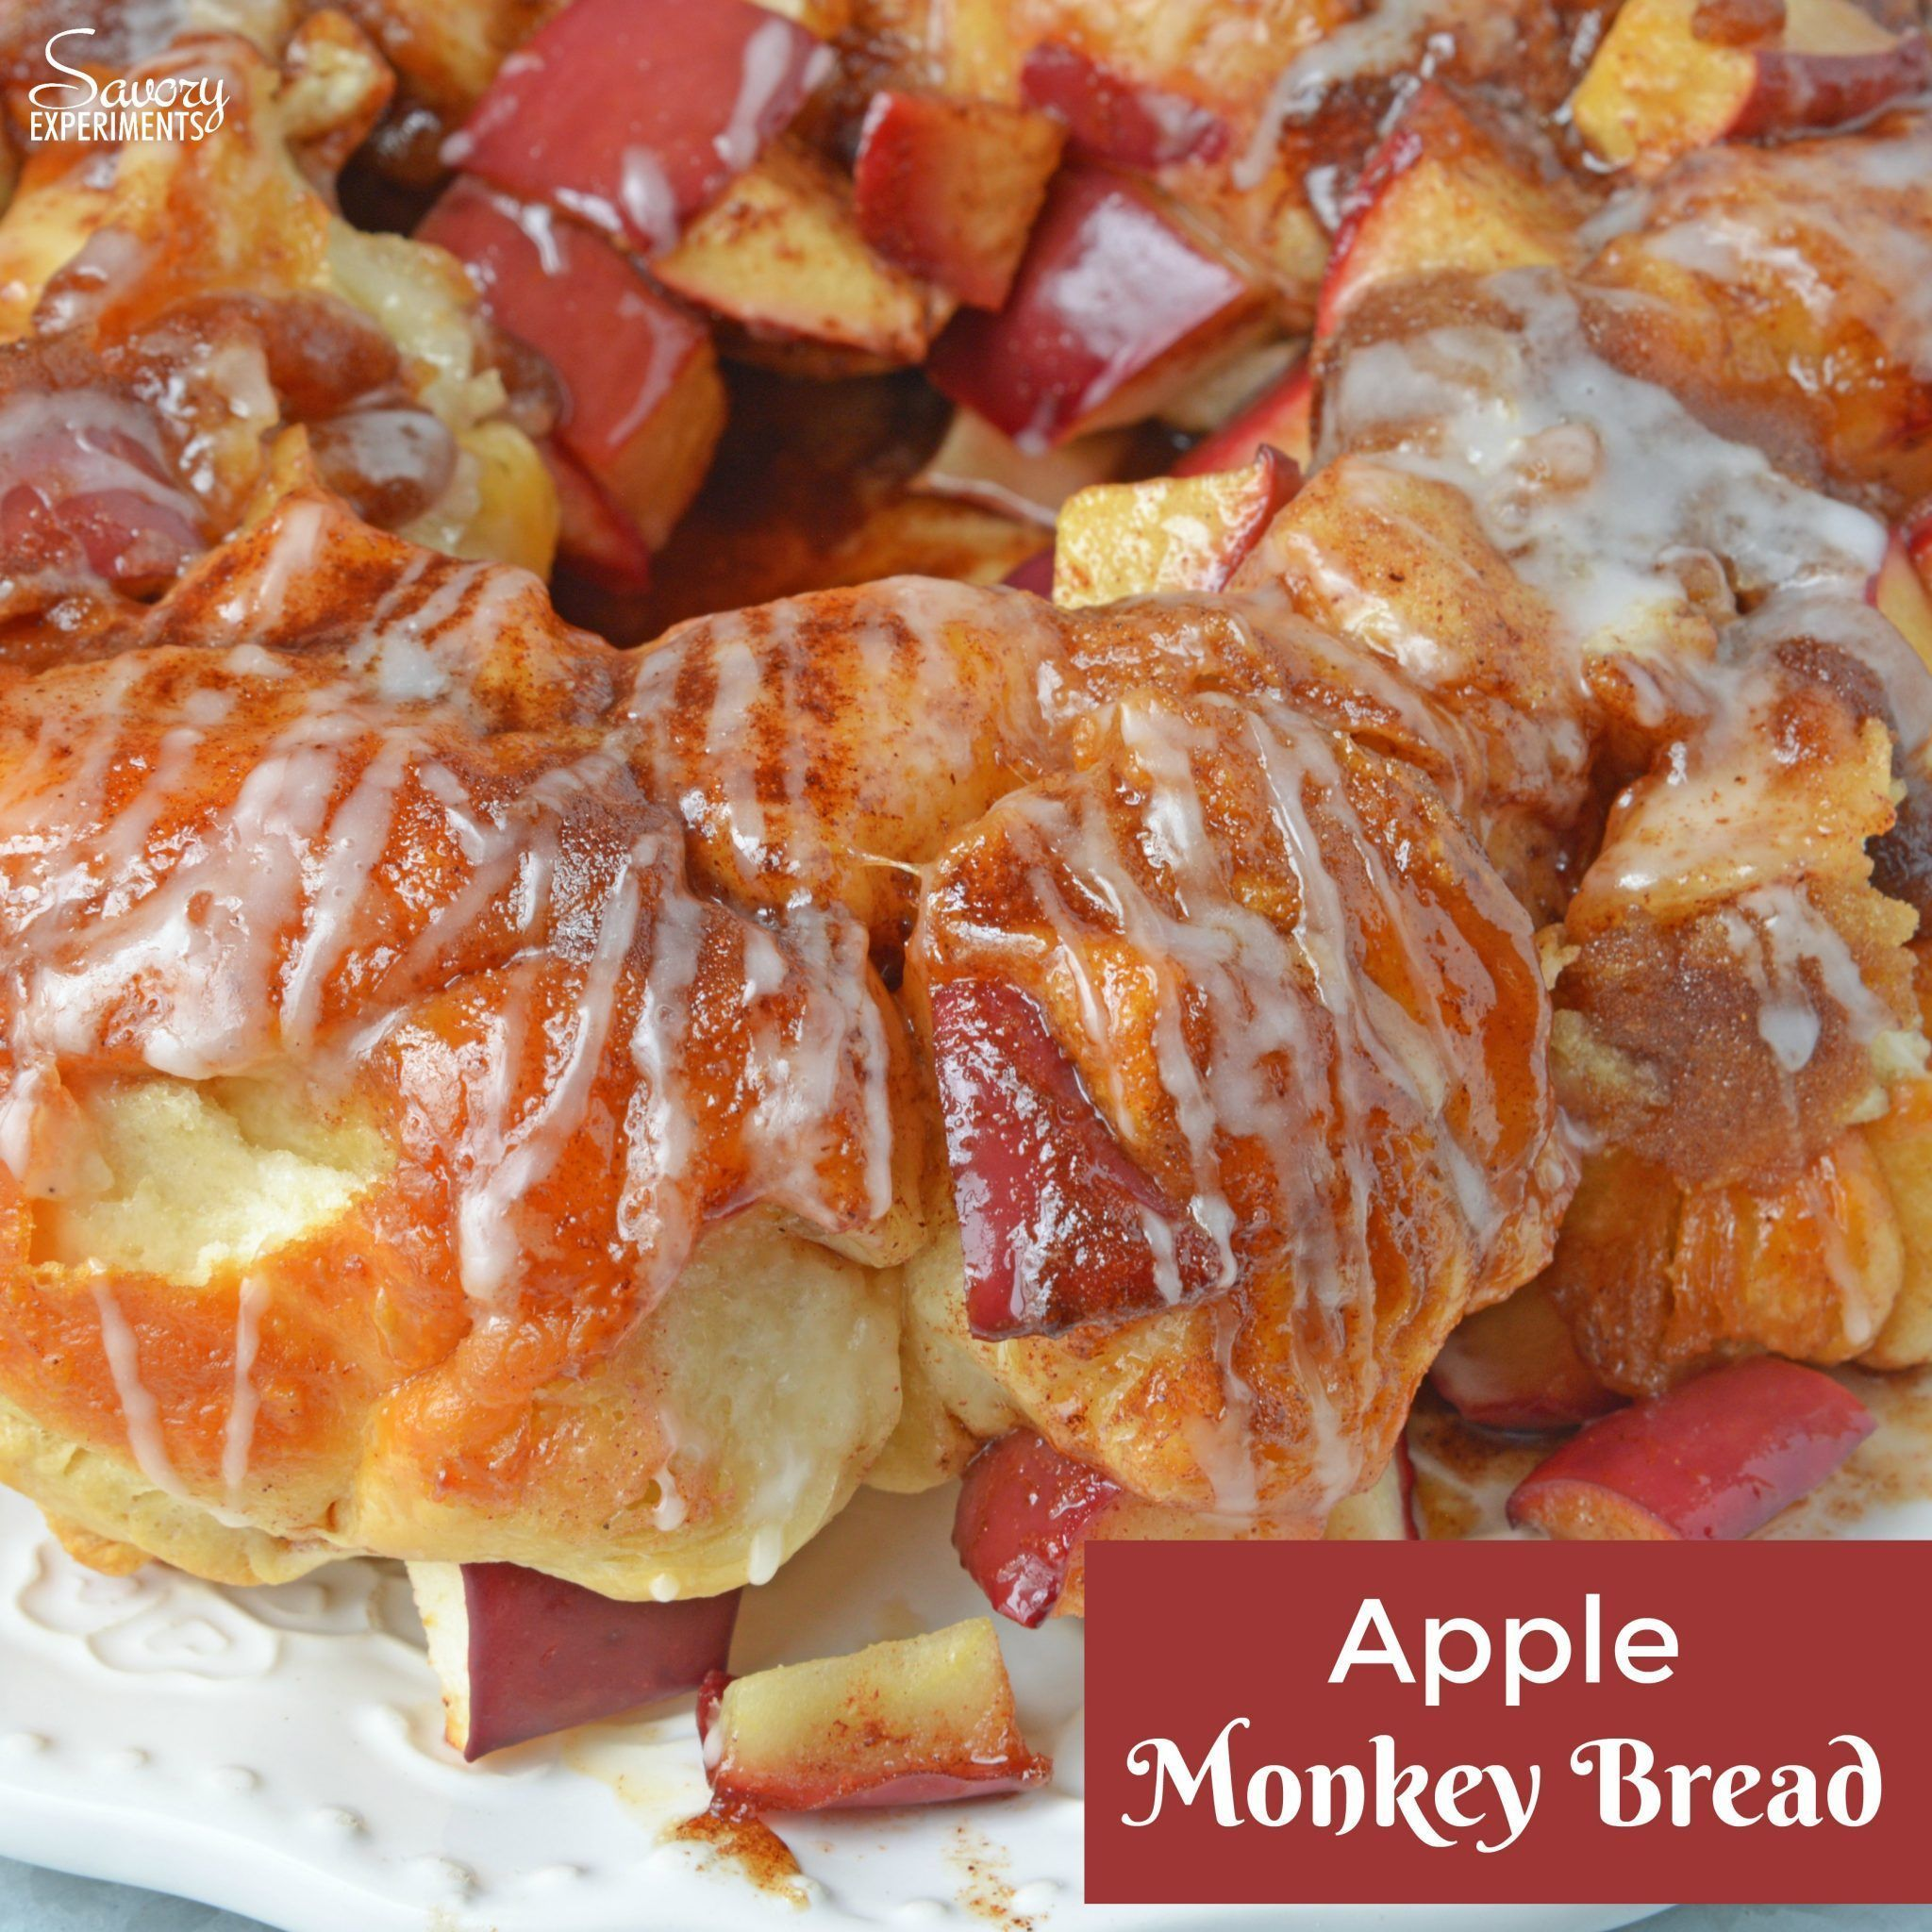 Apple Monkey Bread #monkeybreadwithcannedbiscuits Apple Monkey Bread is an easy monkey bread with canned biscuits and fresh apples. A winning brunch and breakfast recipe for special occasions. #monkeybreadwithcannedbiscuits Apple Monkey Bread #monkeybreadwithcannedbiscuits Apple Monkey Bread is an easy monkey bread with canned biscuits and fresh apples. A winning brunch and breakfast recipe for special occasions.